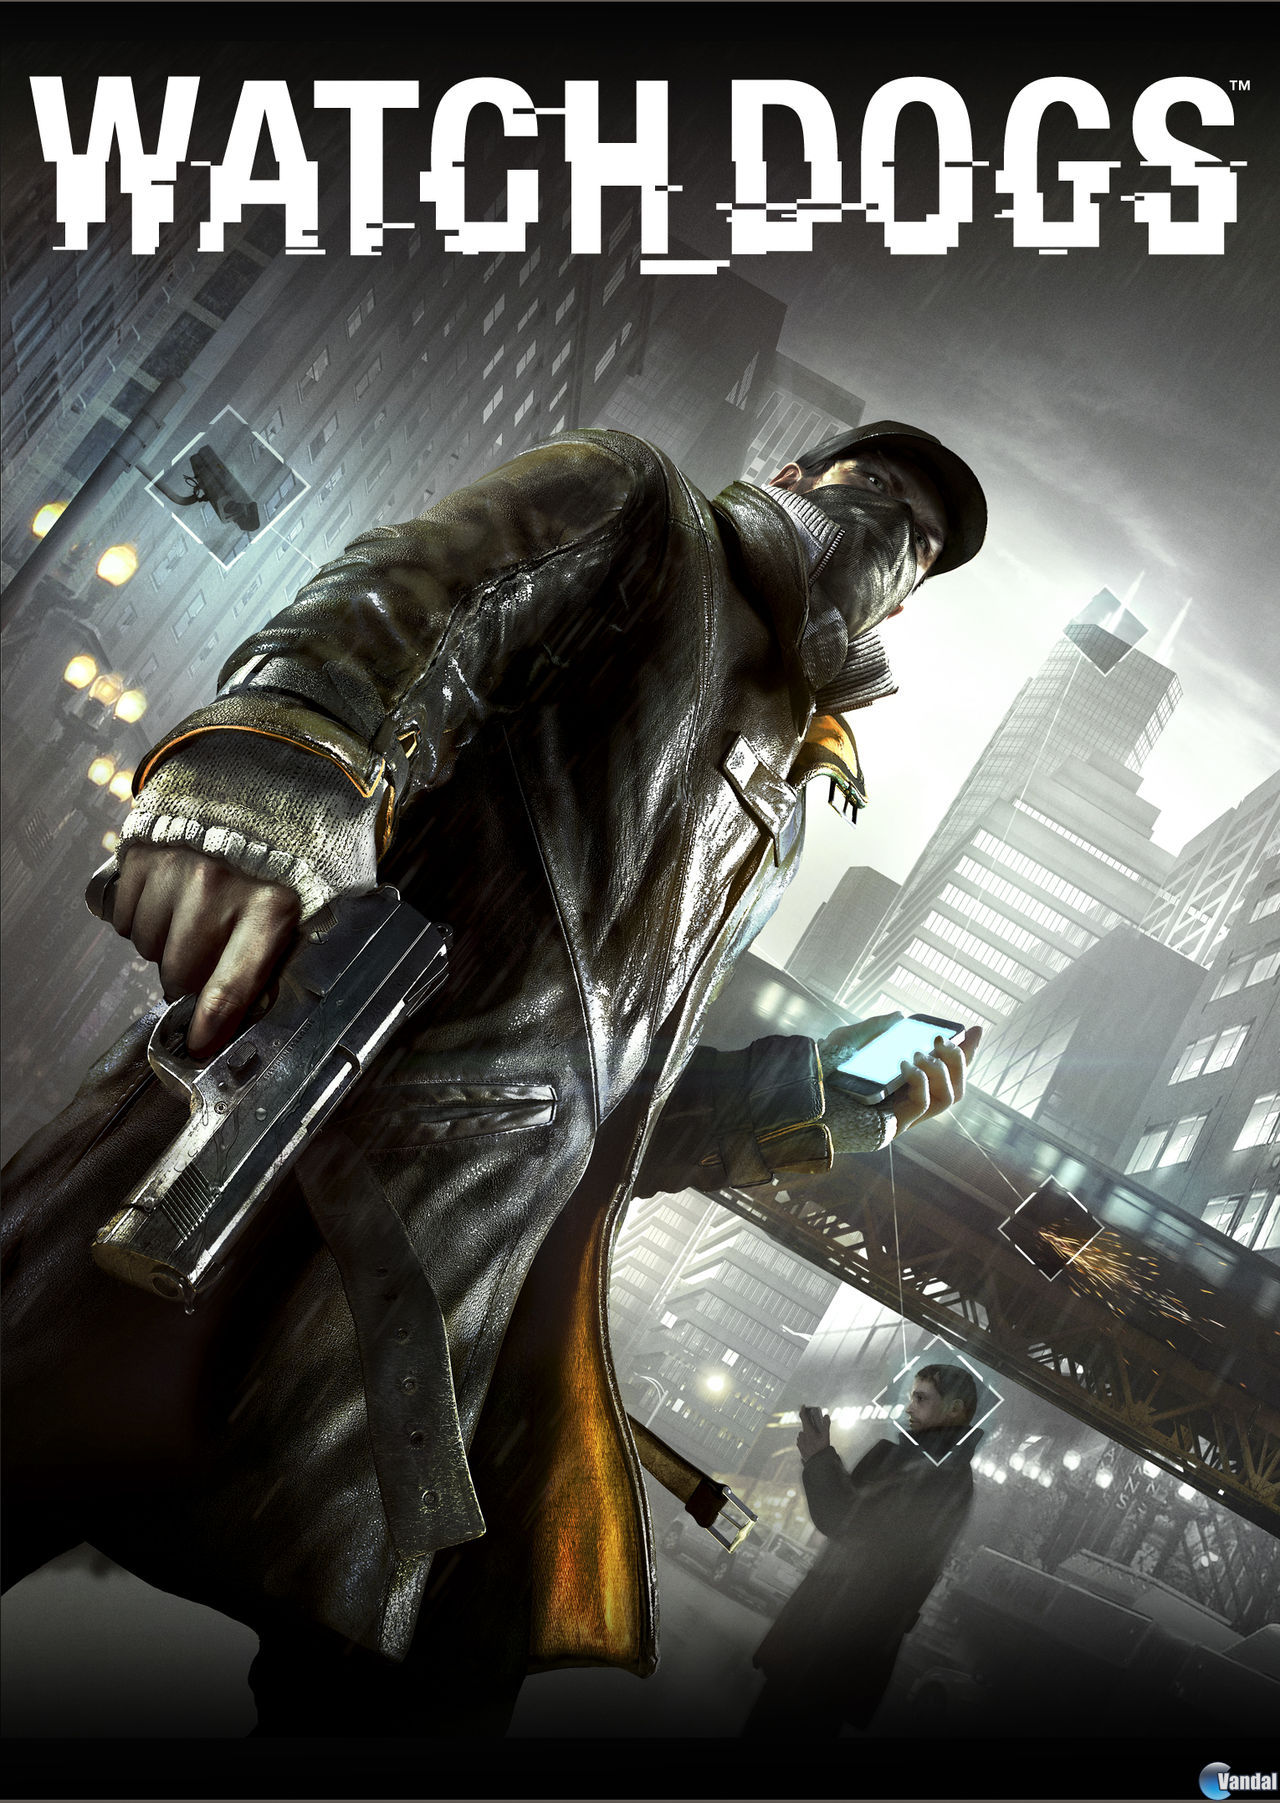 Watch-Dogs-Ubisoft-cover-art